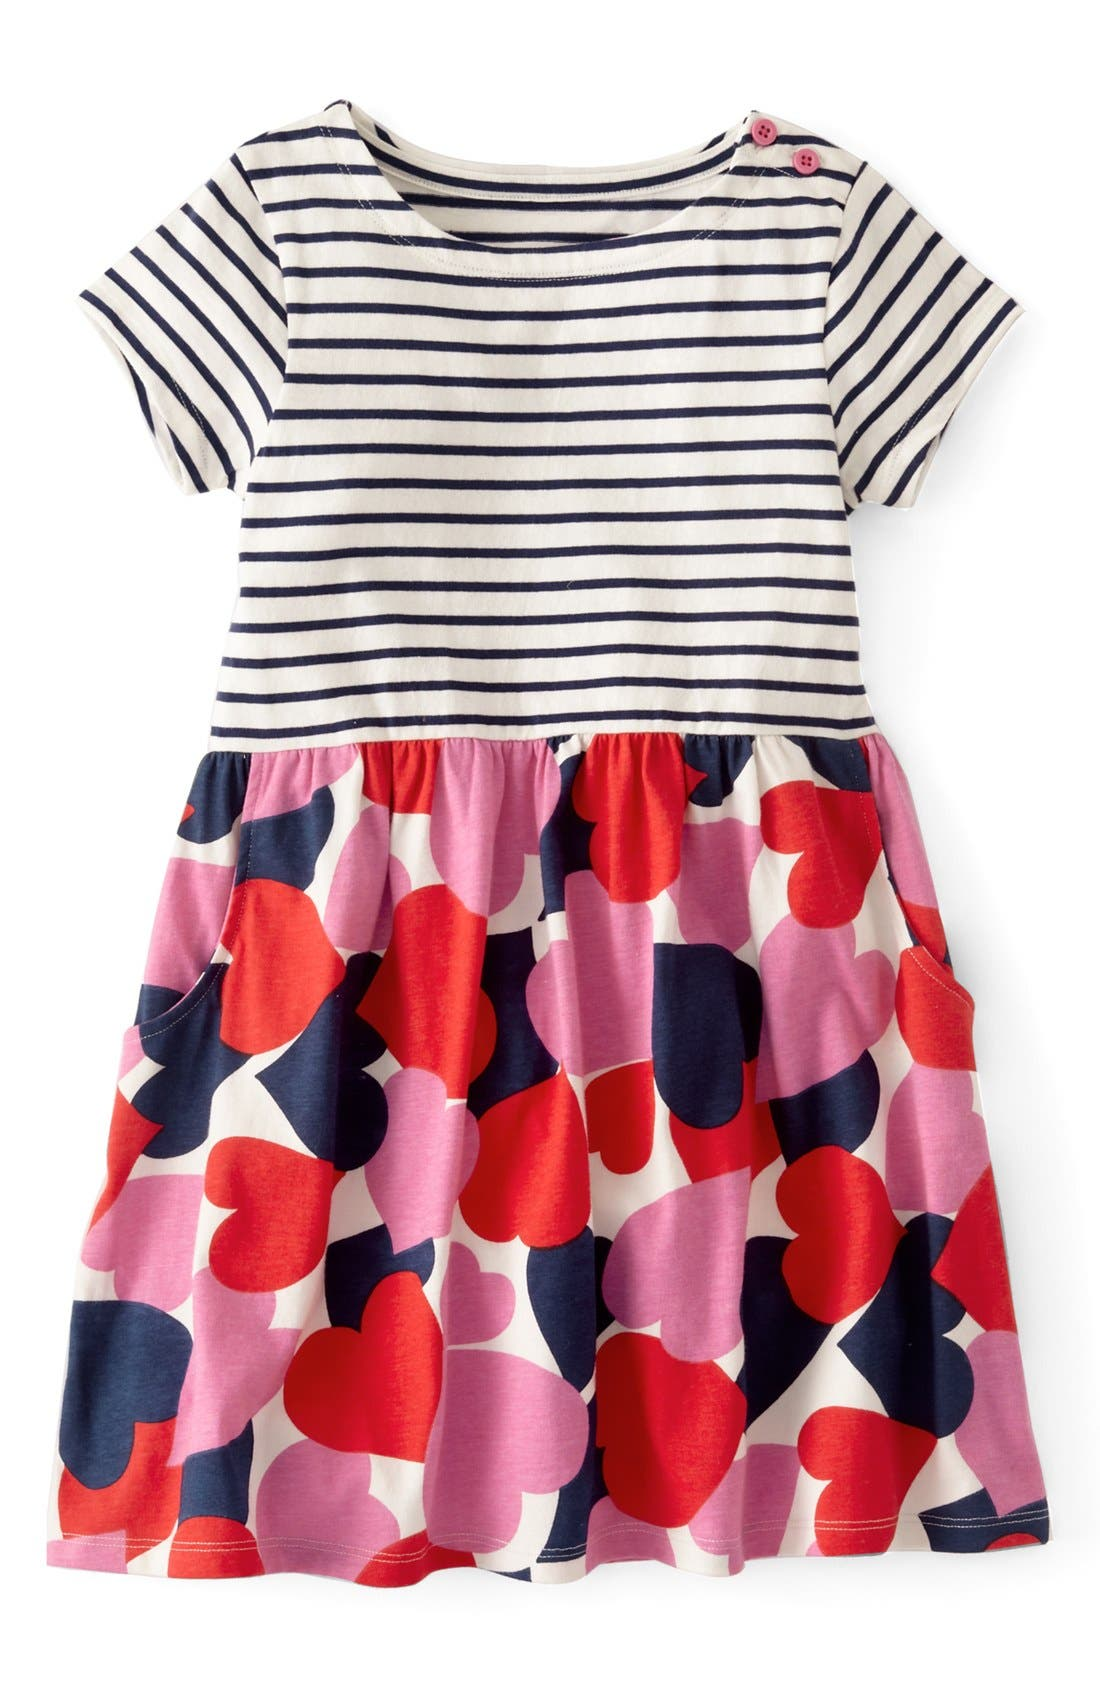 Main Image - Mini Boden 'Hotchpotch' Jersey Dress (Toddler Girls, Little Girls & Big Girls)(Online Only)